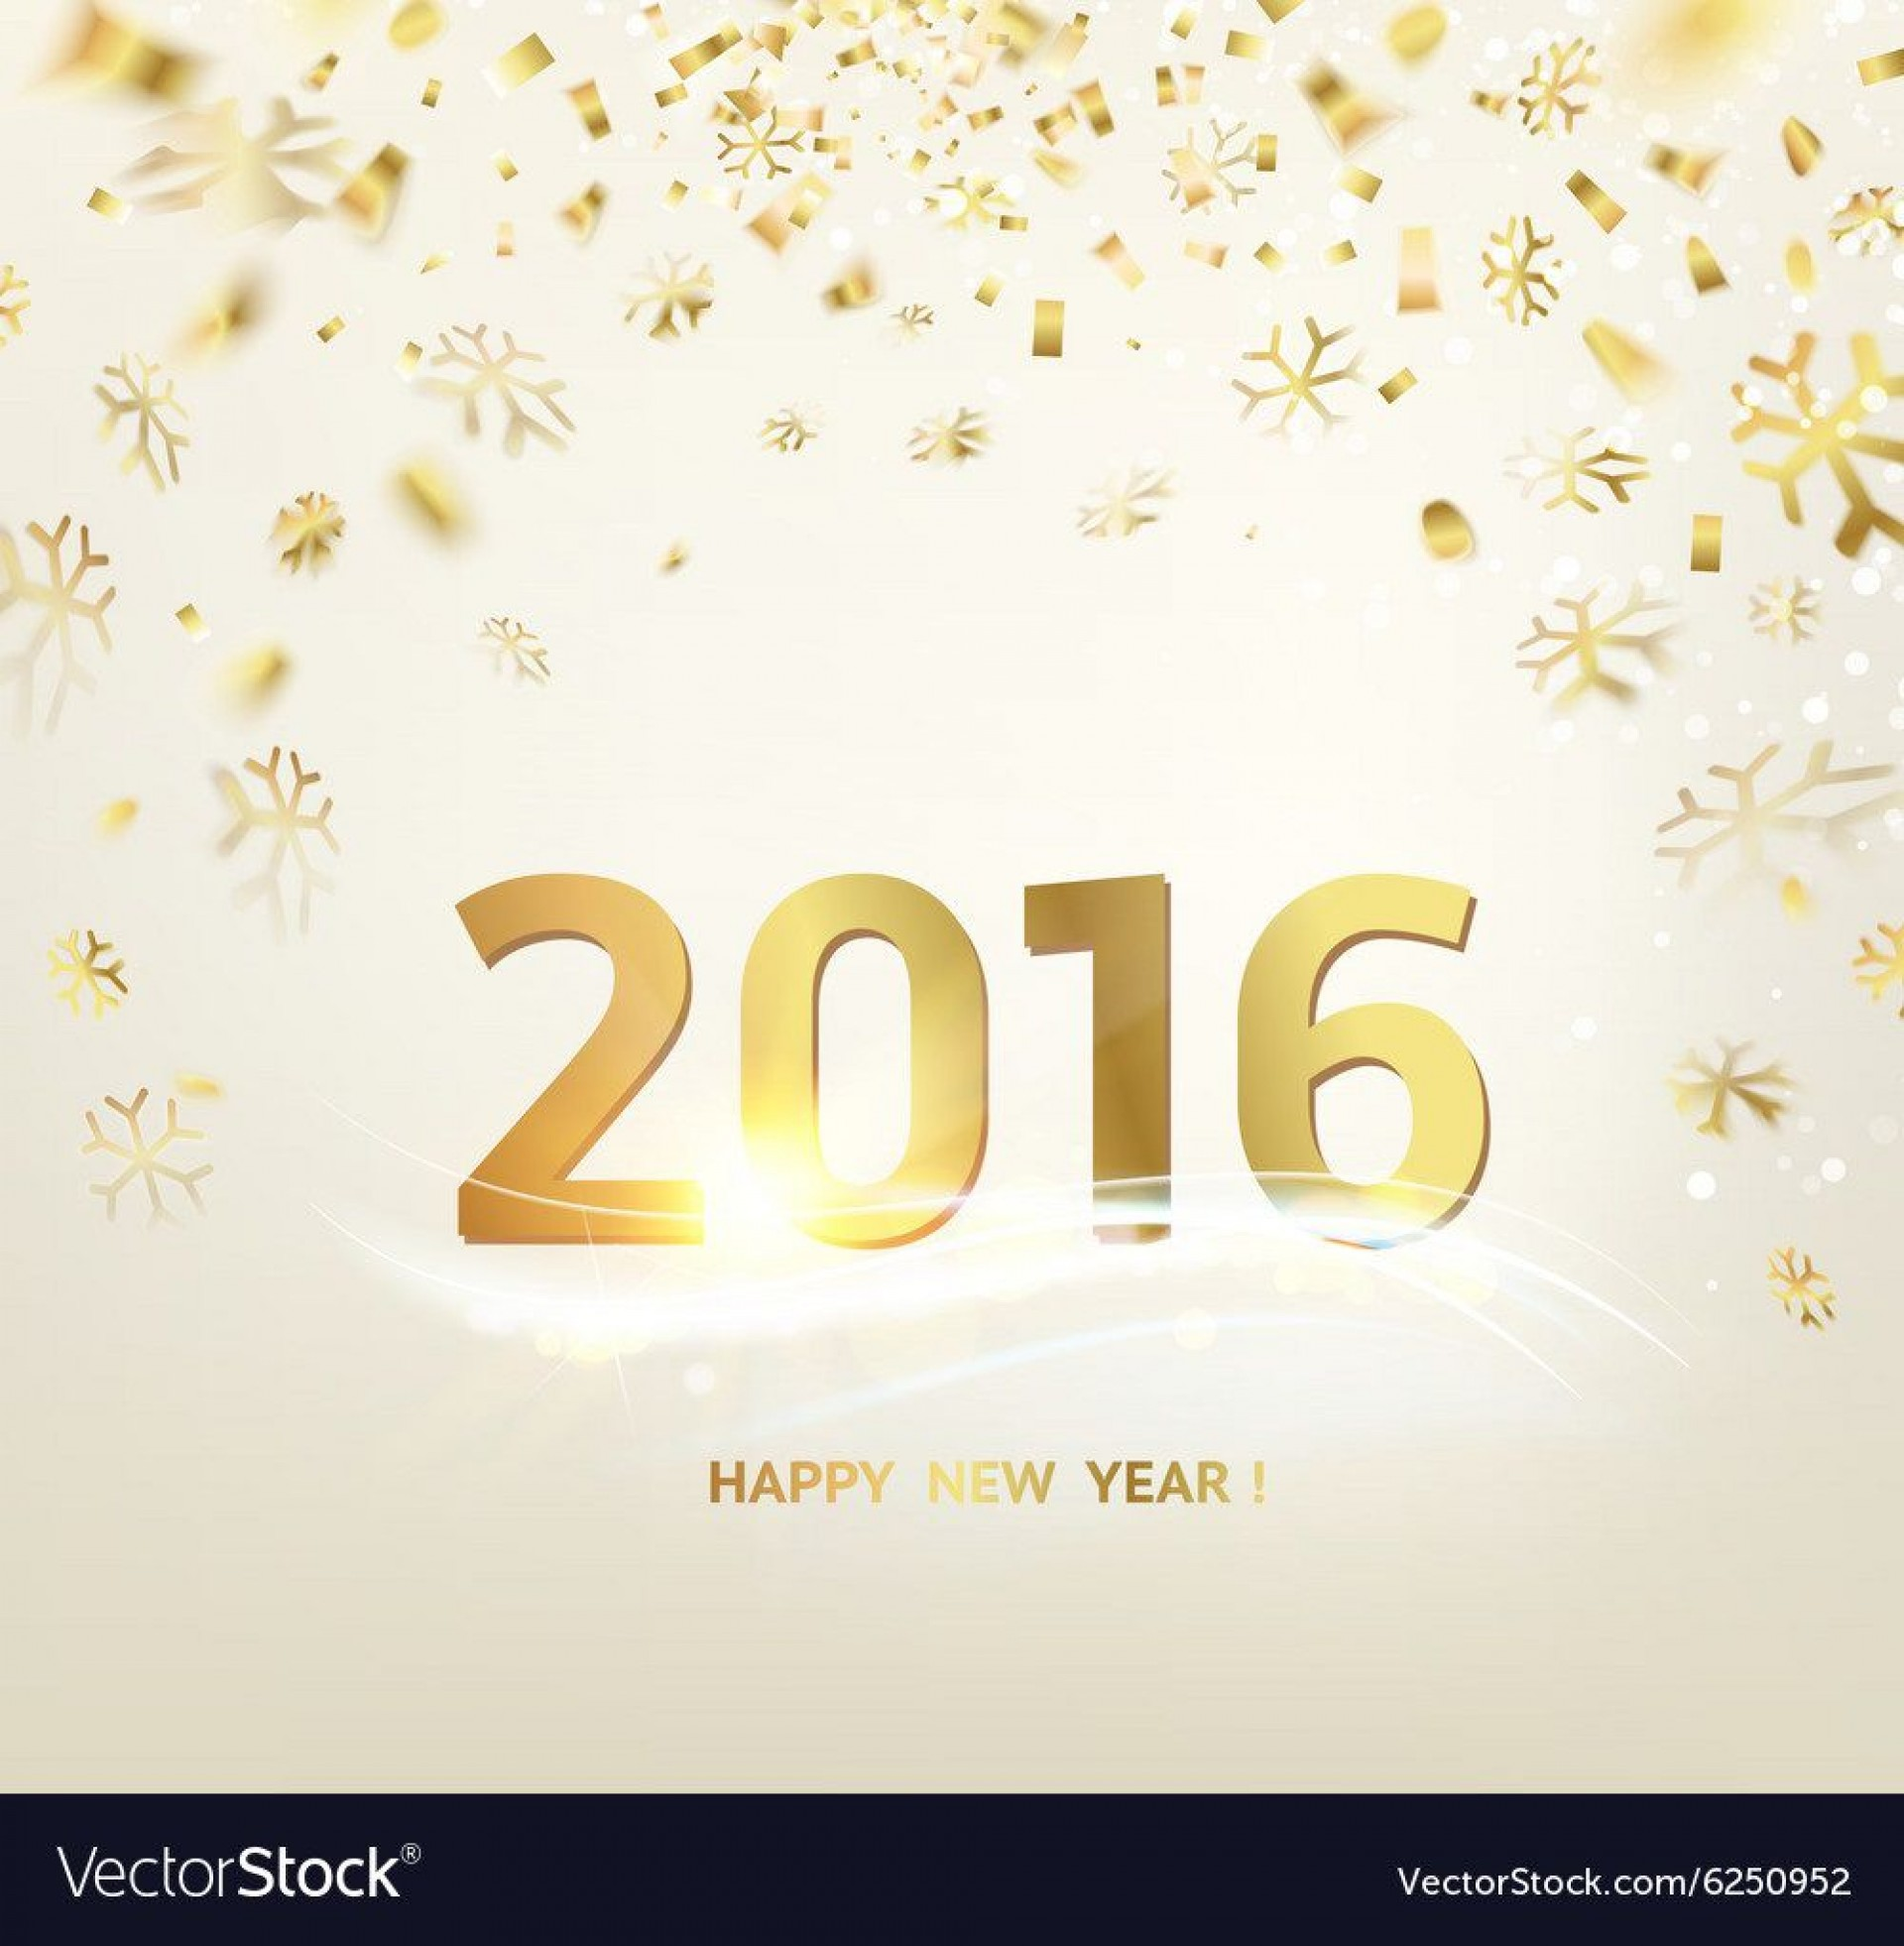 007 Phenomenal New Year Card Template Picture  Happy Chinese 2020 Free1920